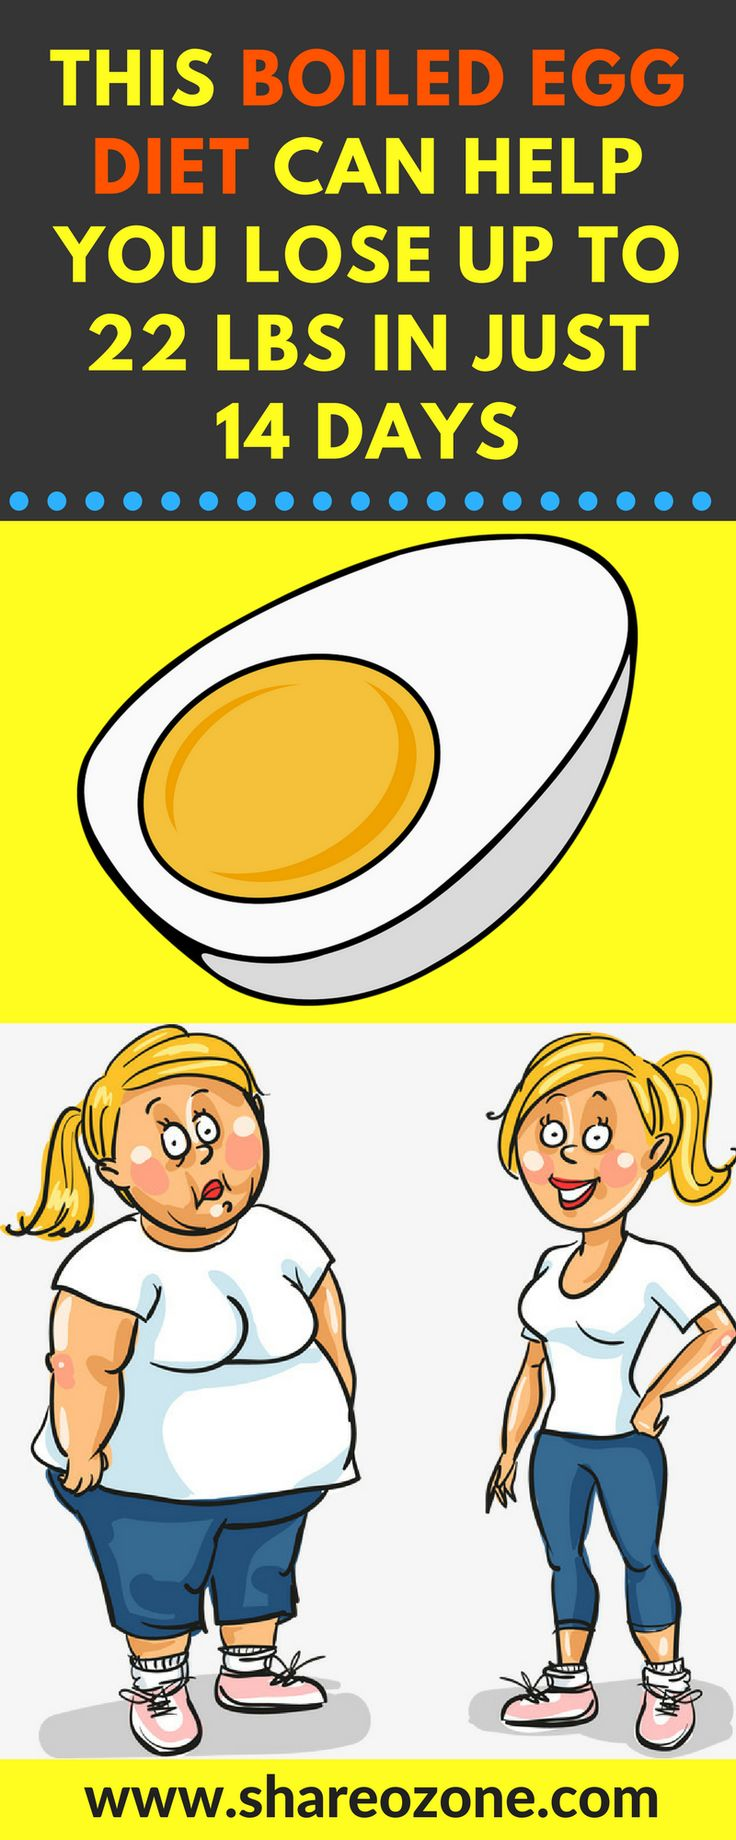 This Boiled Egg Diet Can Help You Lose up to 22 Lbs in Just 14 Days The Boiled Egg Diet There are a number of benefits to point out regarding this simple egg diet. For one it doesnt require you to buy a lot of products that might eat up your money. Second of all this diet has been shown to increase metabolism and decrease the amount of fat in the body and you get all the amazing health benefits of... #DiabetesCureNumbers